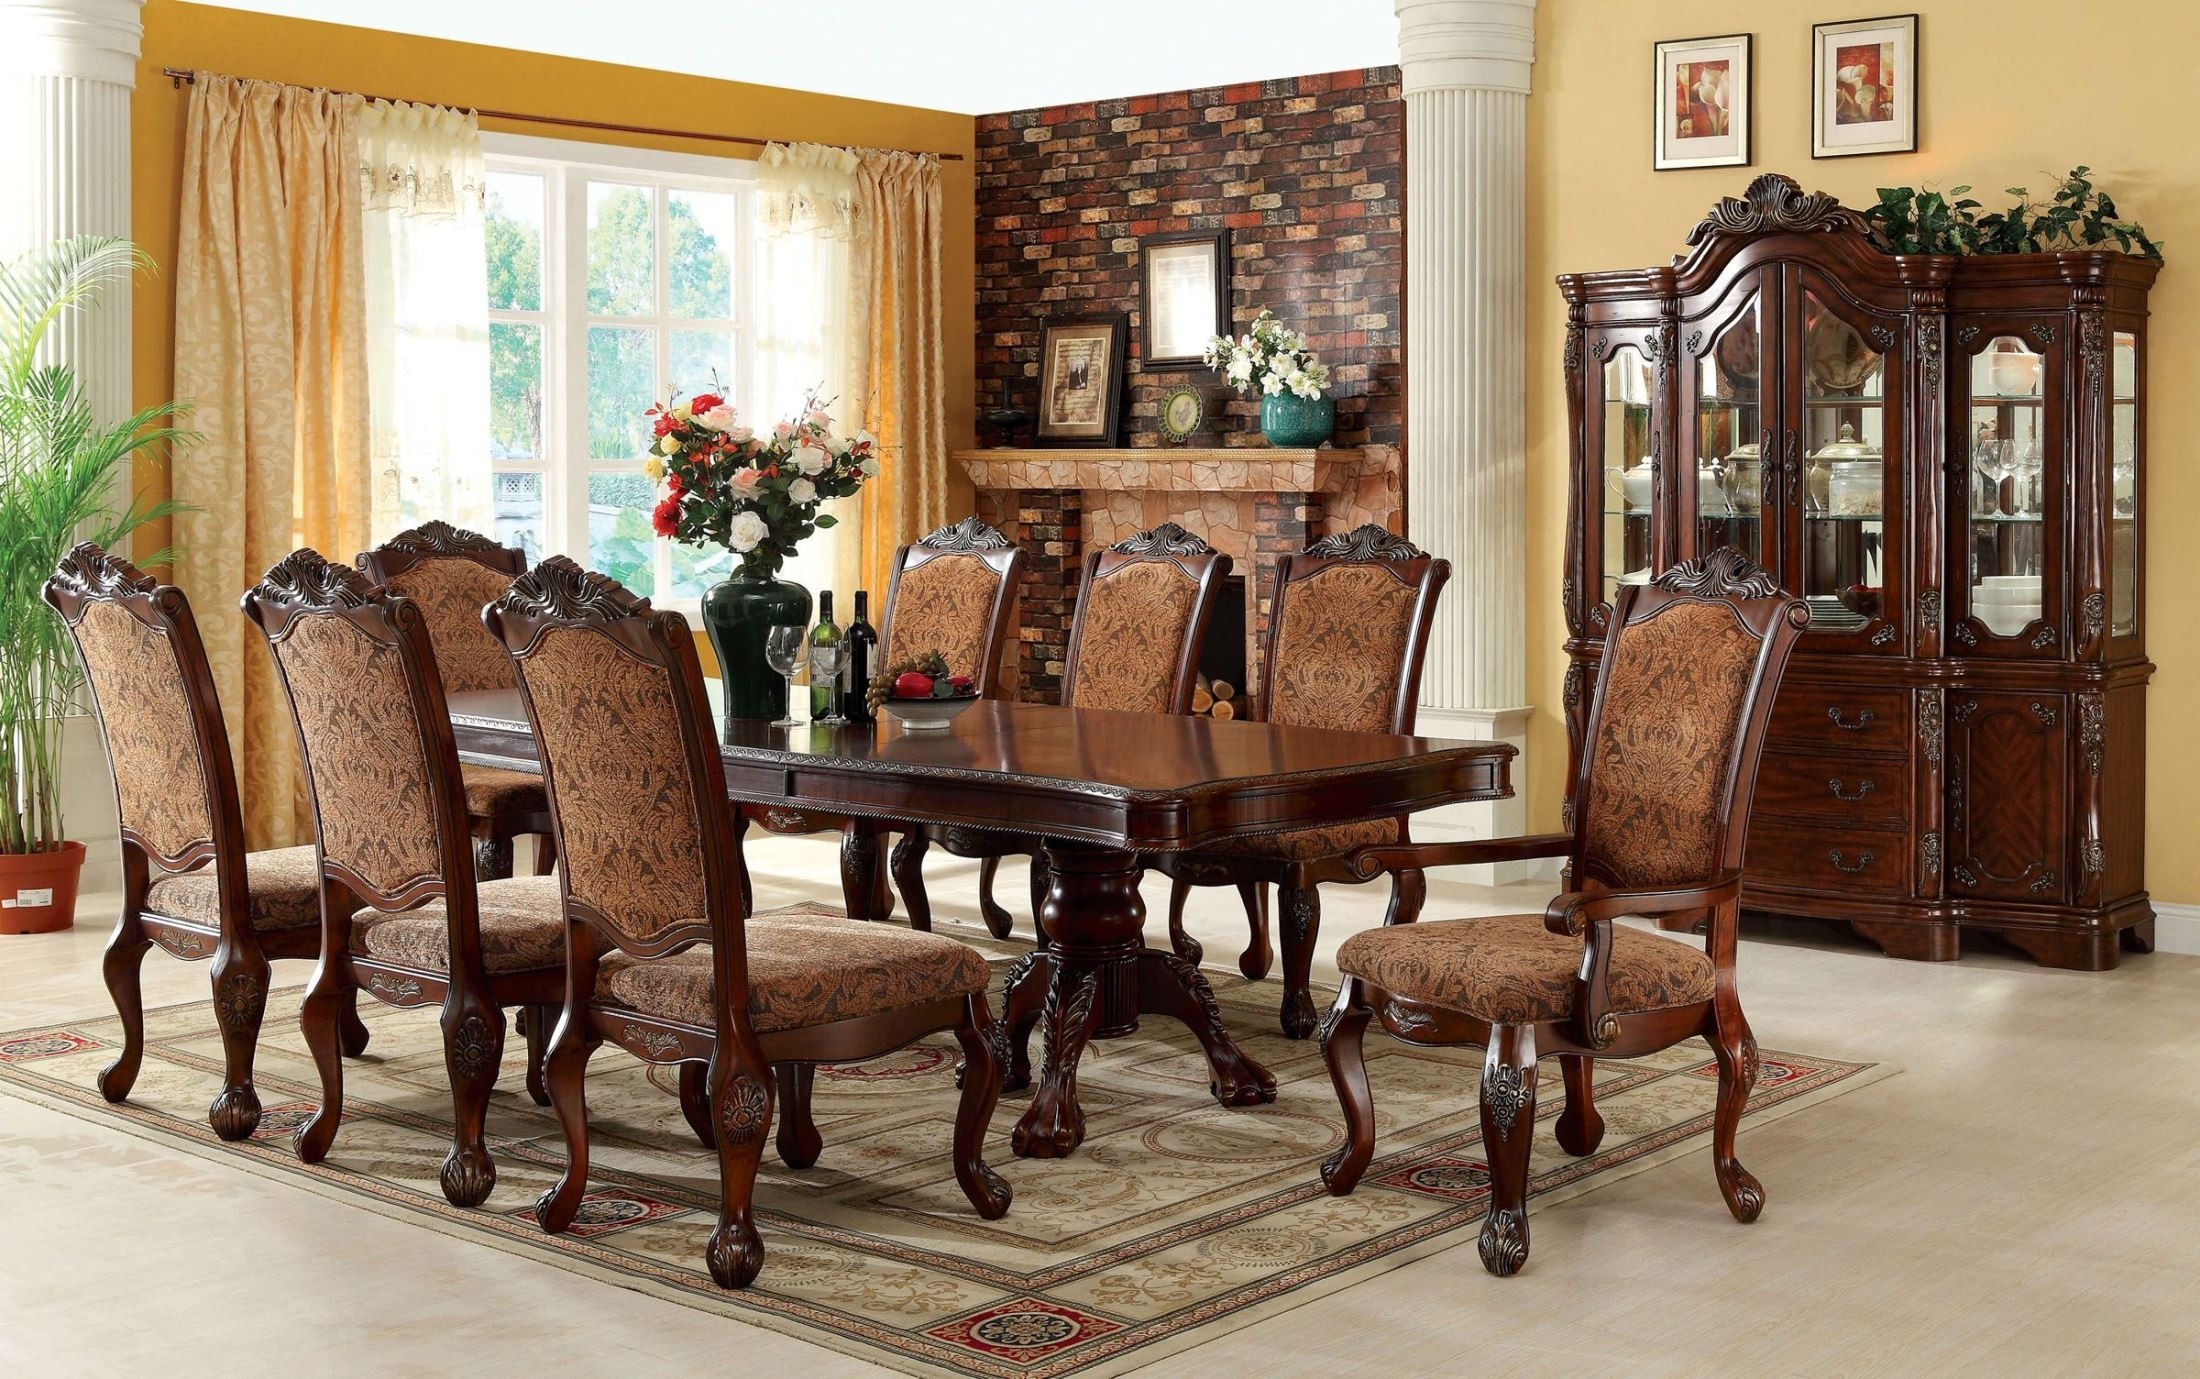 Cromwell antique cherry formal dining room set cm3103t for Formal dining room tables